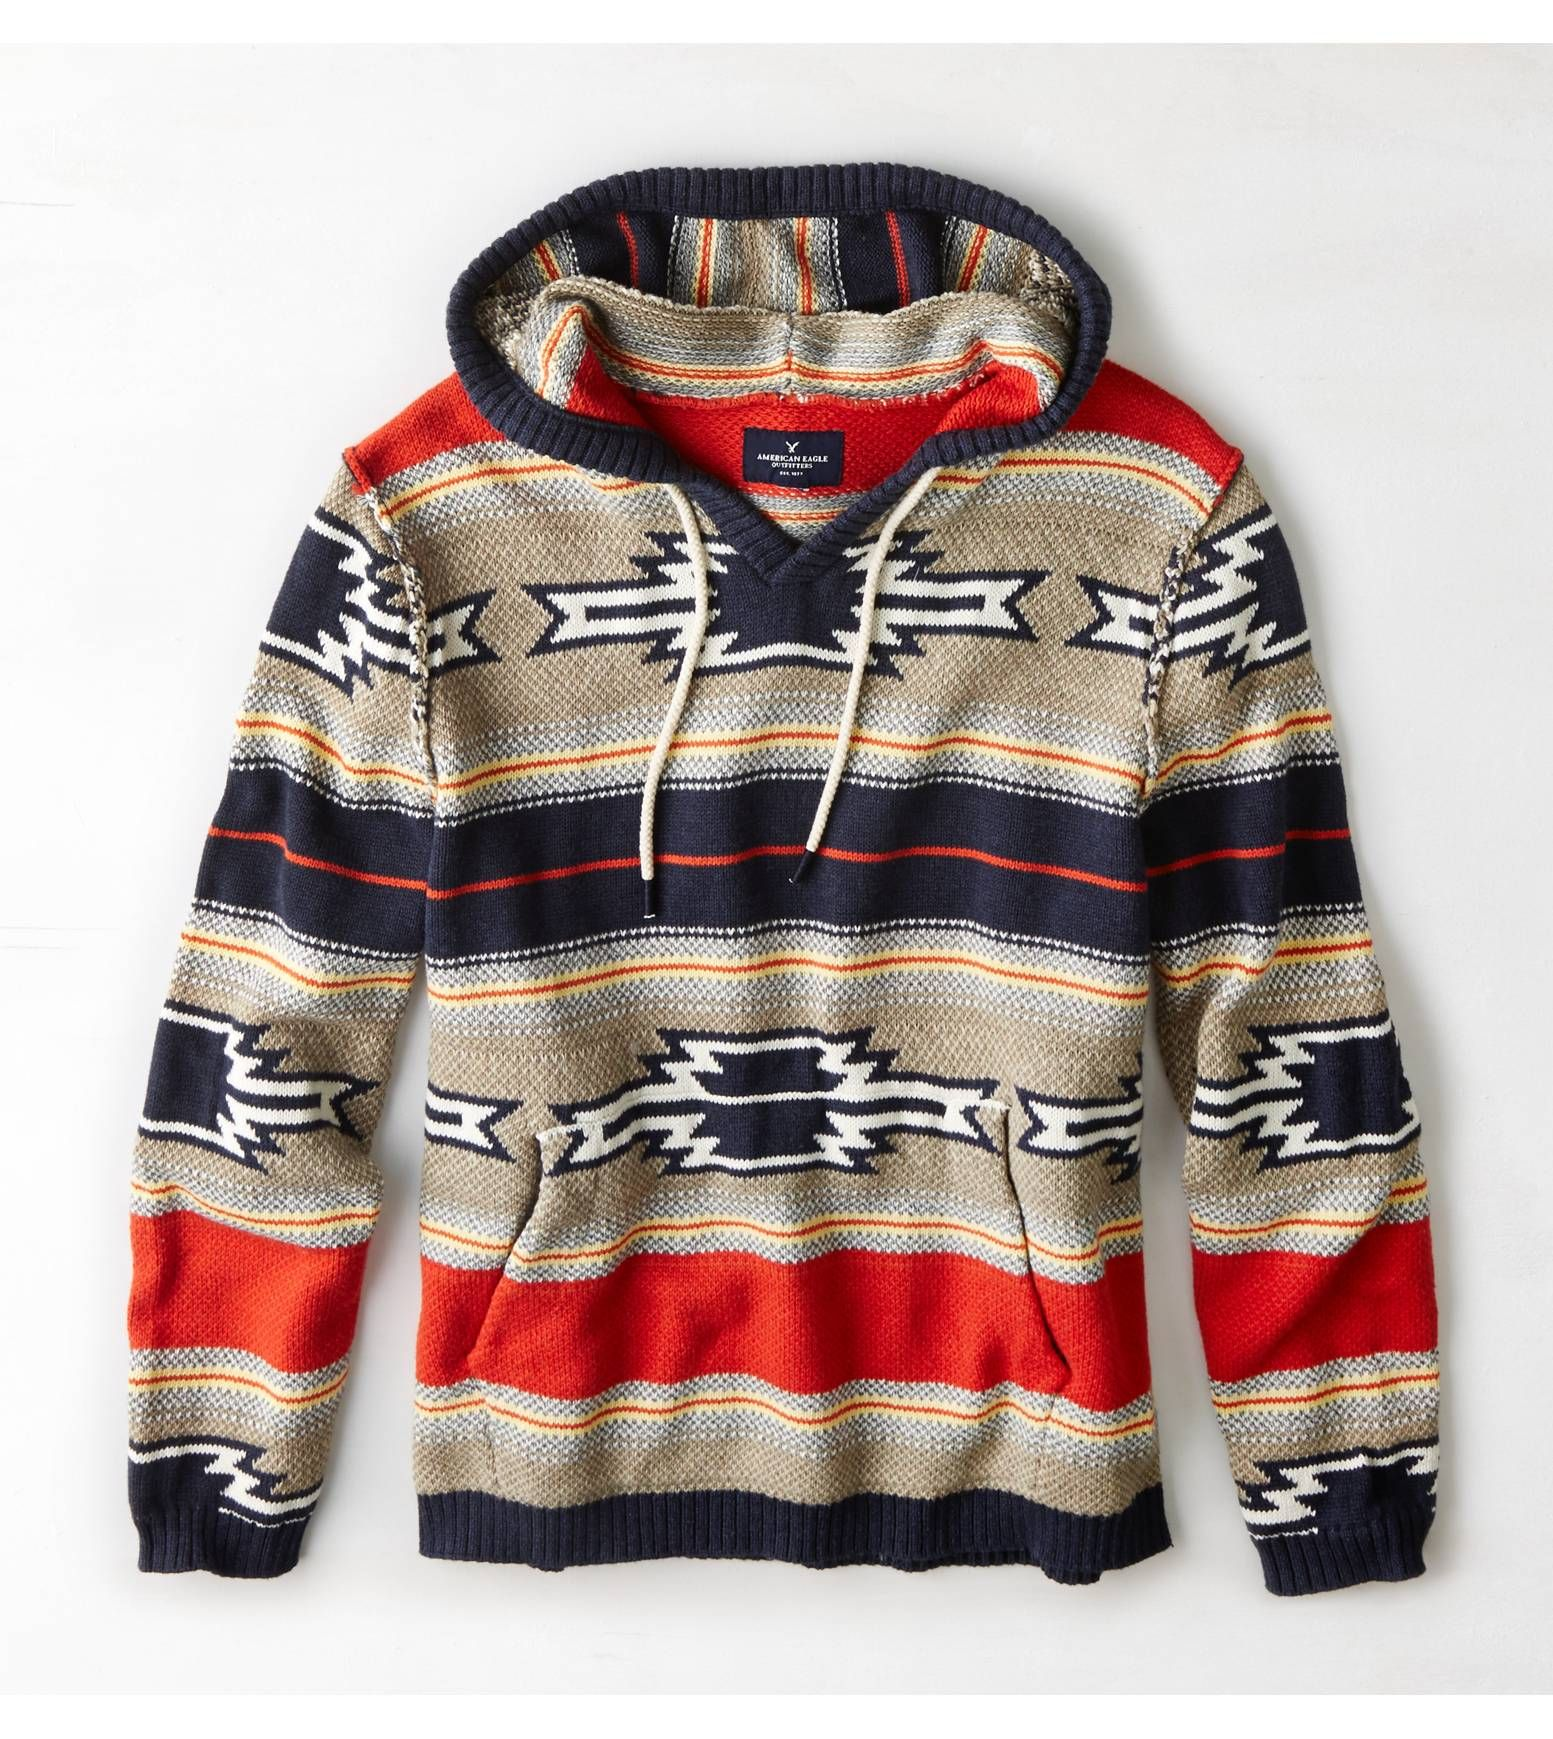 Drugs rugs and baja hoodies for men and women. Vintage from $20, new from $ Free 3 day shipping on orders over $50!